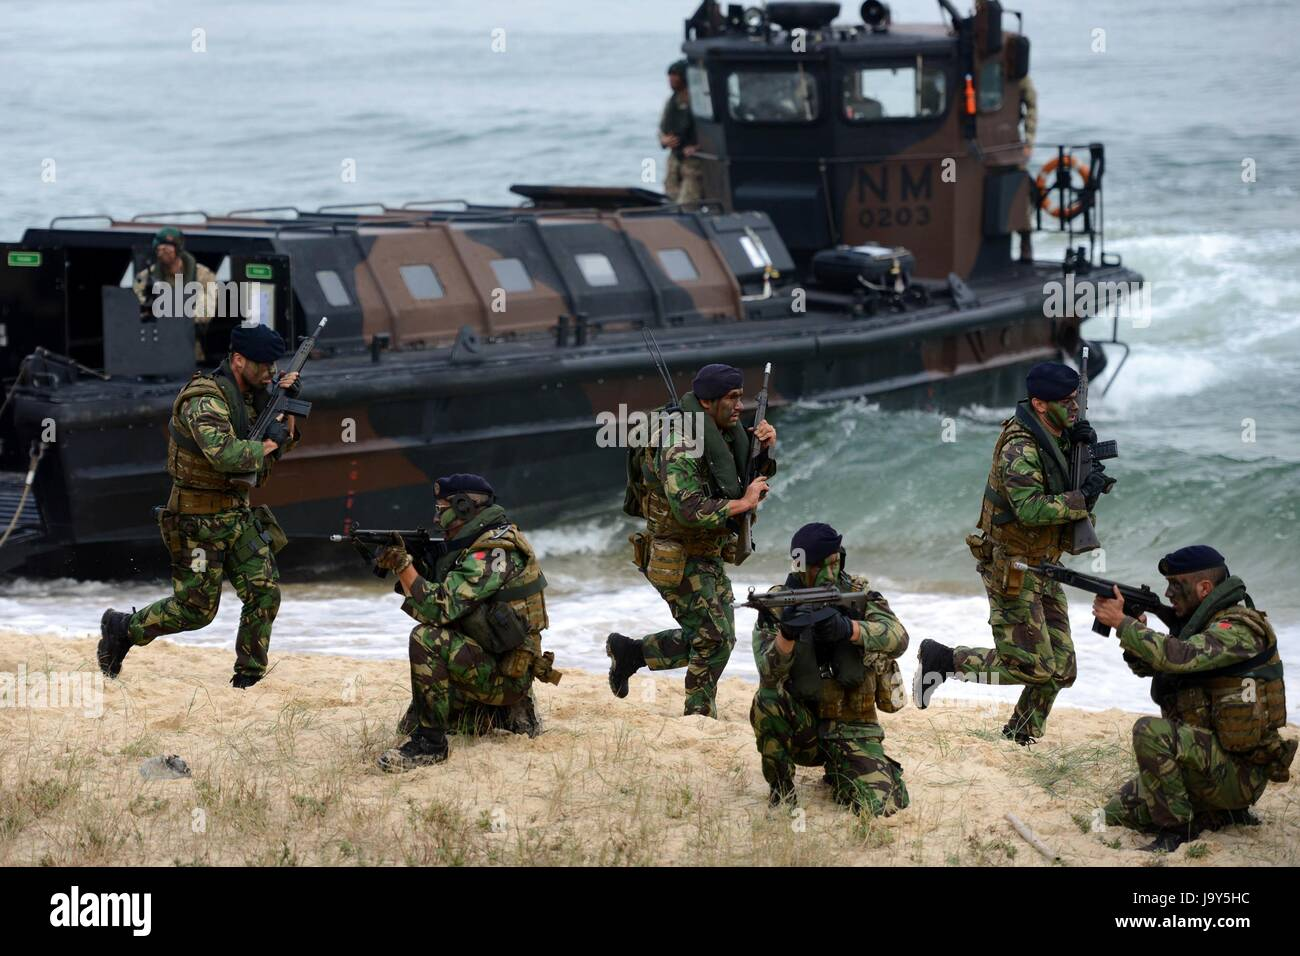 Portuguese commandos conduct an amphibious beach landing during NATO exercise Trident Juncture November 5, 2015 - Stock Image